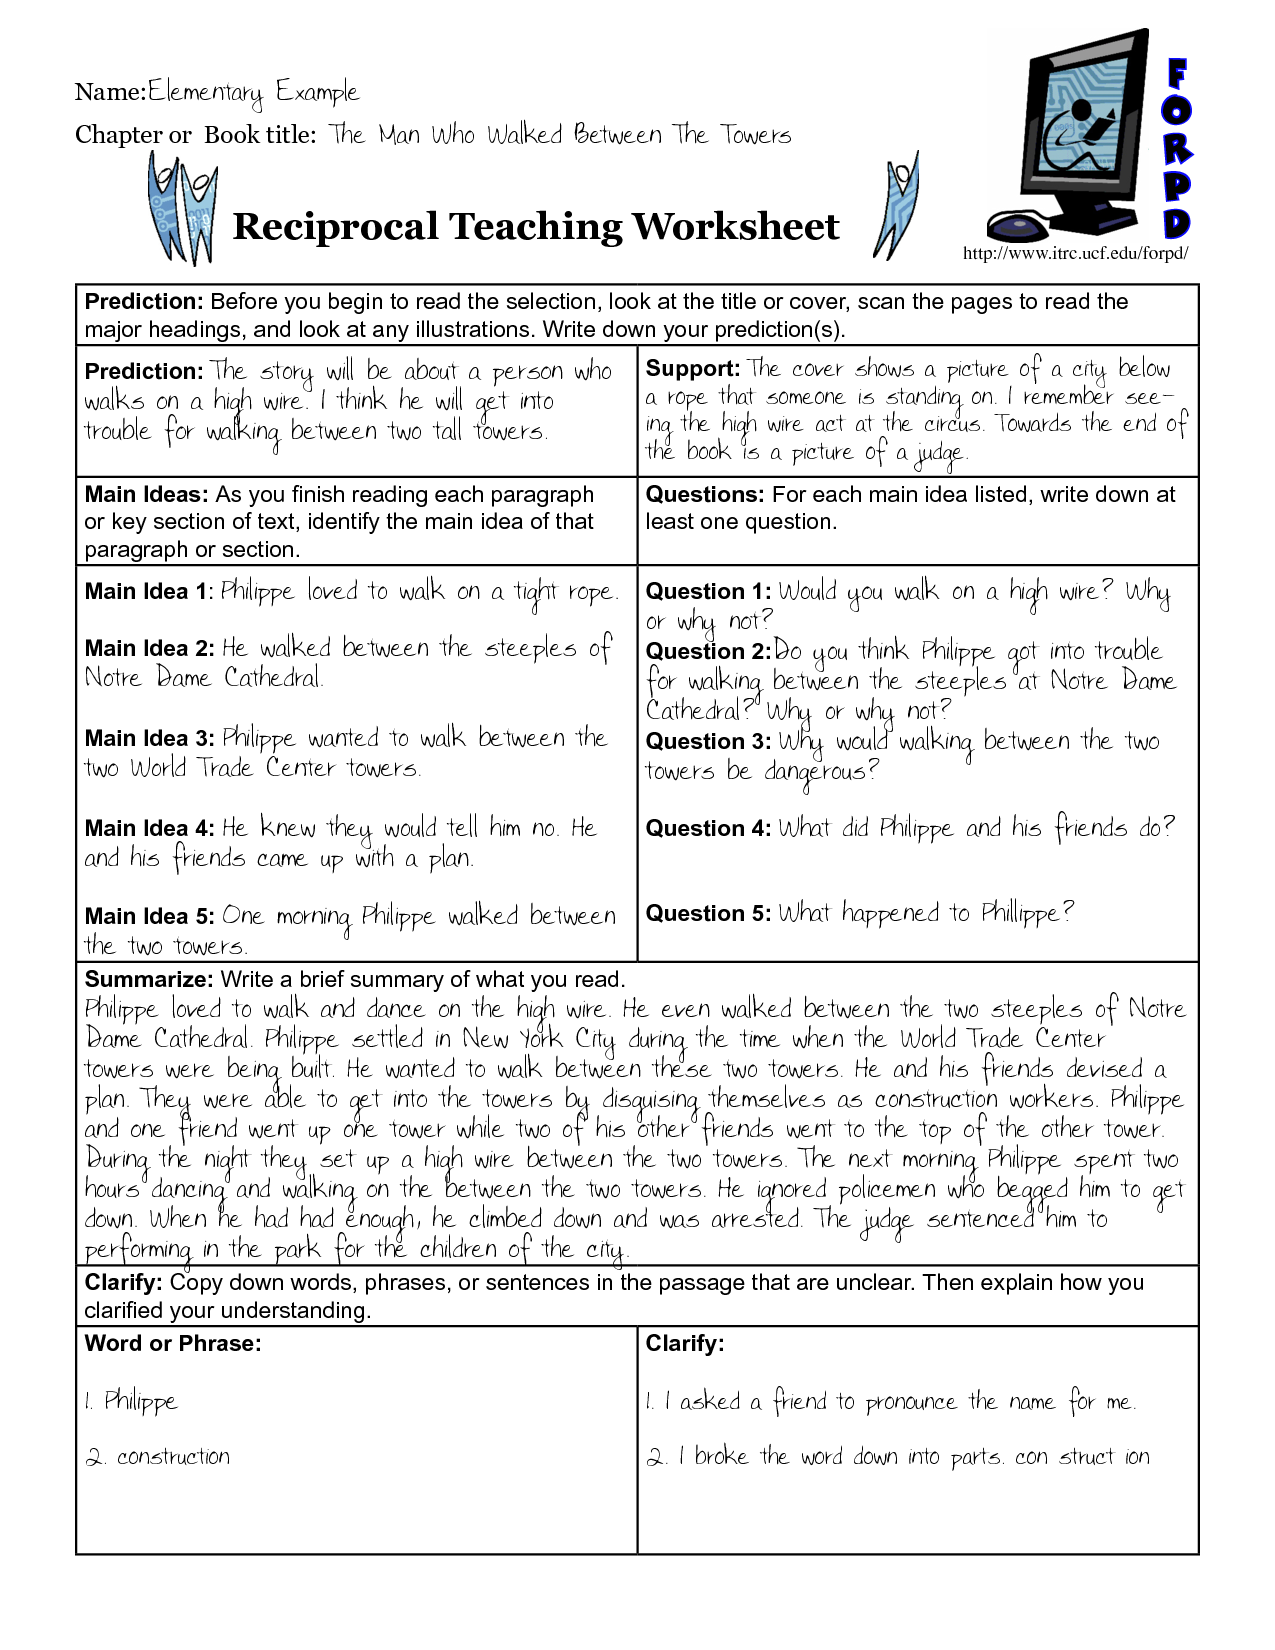 worksheet Reciprocal Teaching Worksheet reciprocal teaching graphic organizer google search 4th grade search